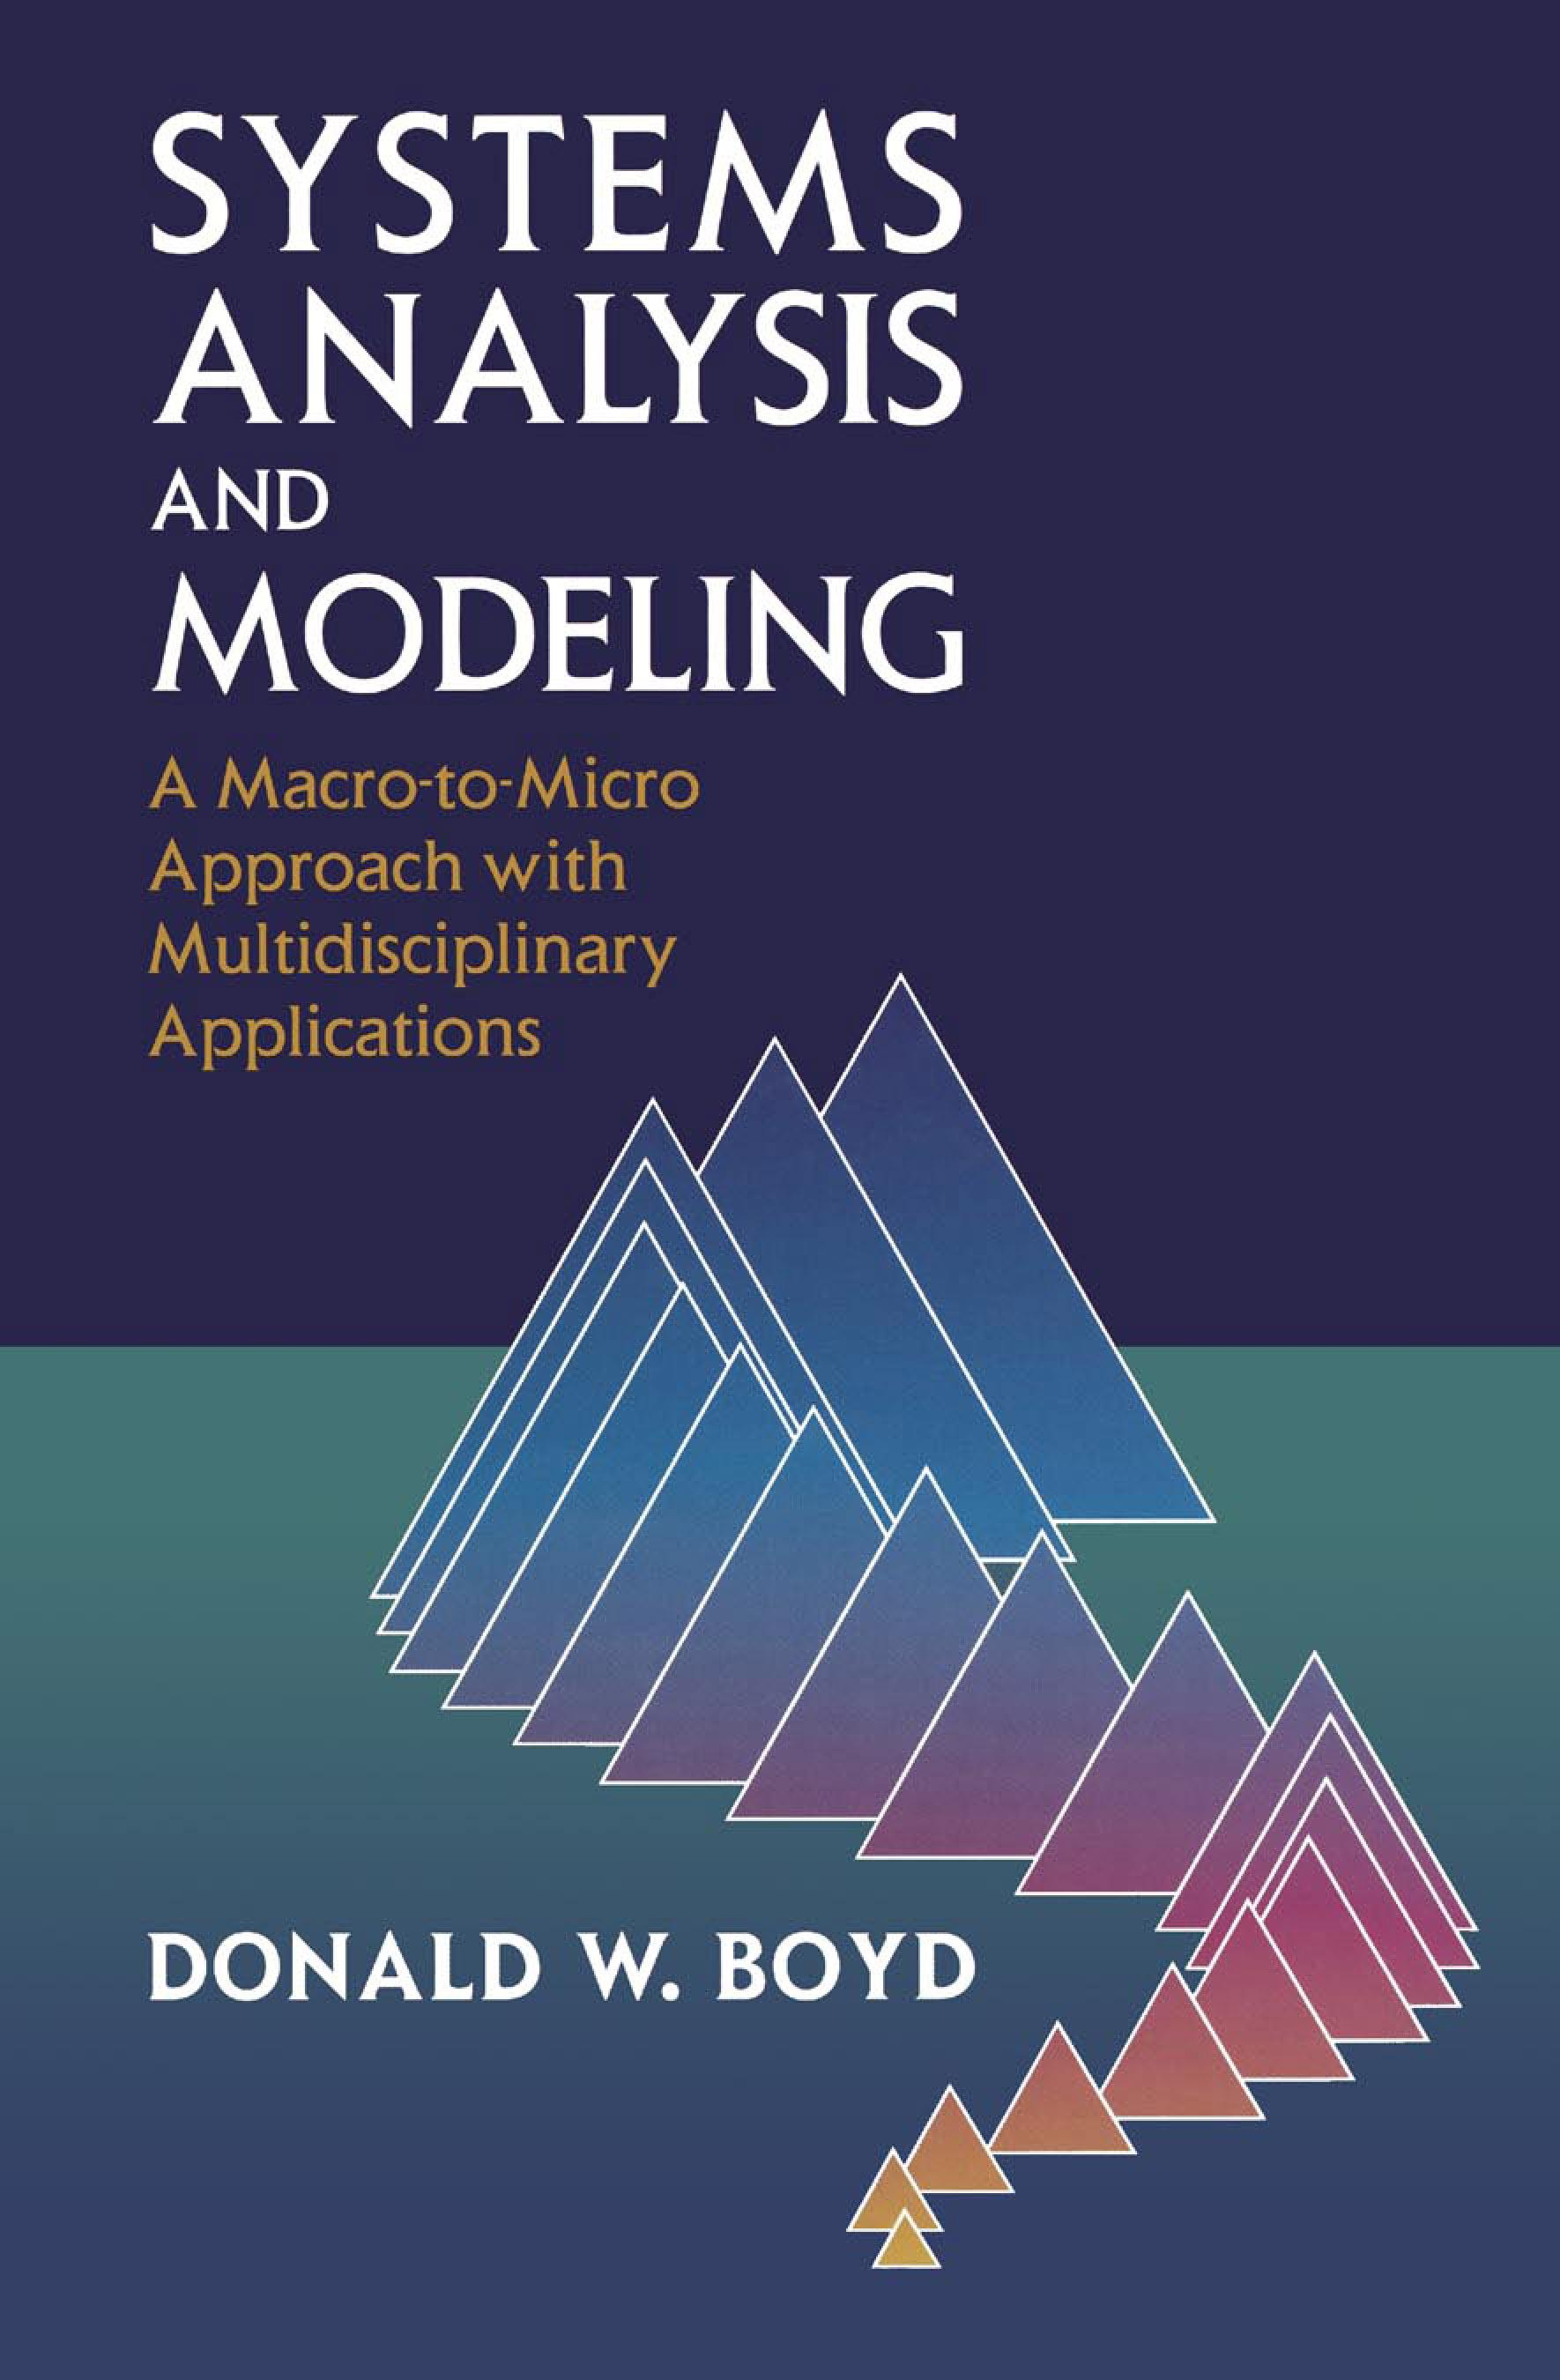 Systems Analysis and Modeling: A Macro-to-Micro Approach with Multidisciplinary Applications EB9780080518398